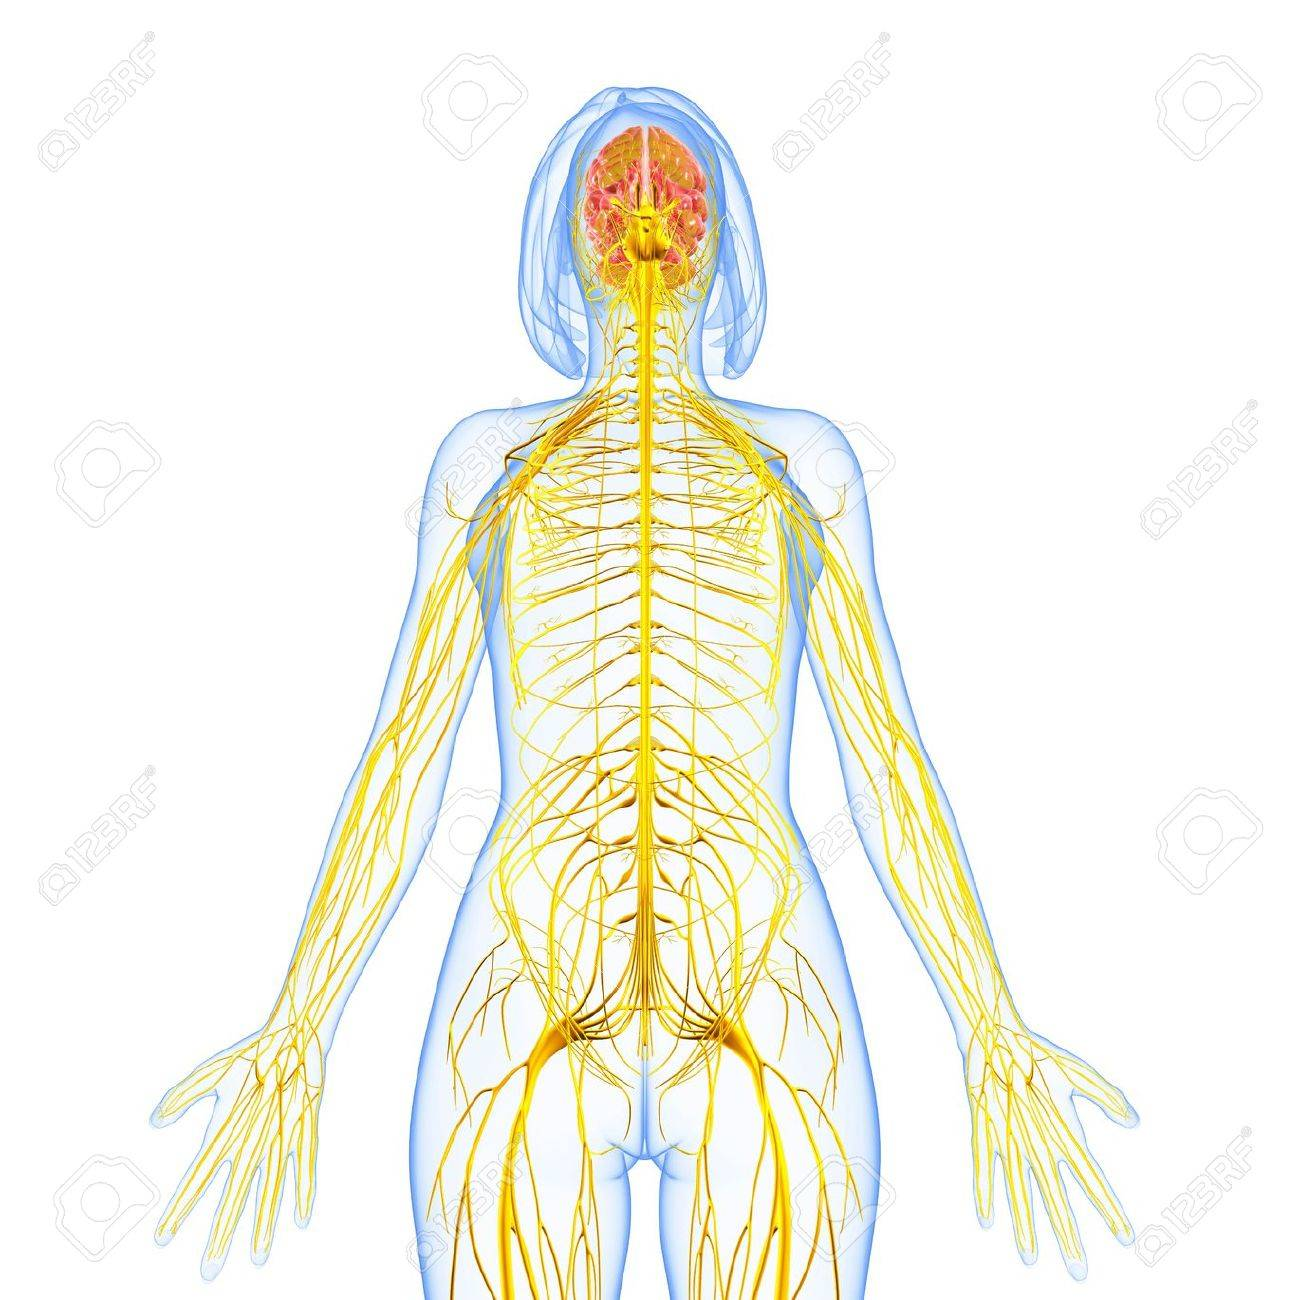 Female Nervous System Front View Stock Photo Picture And Royalty